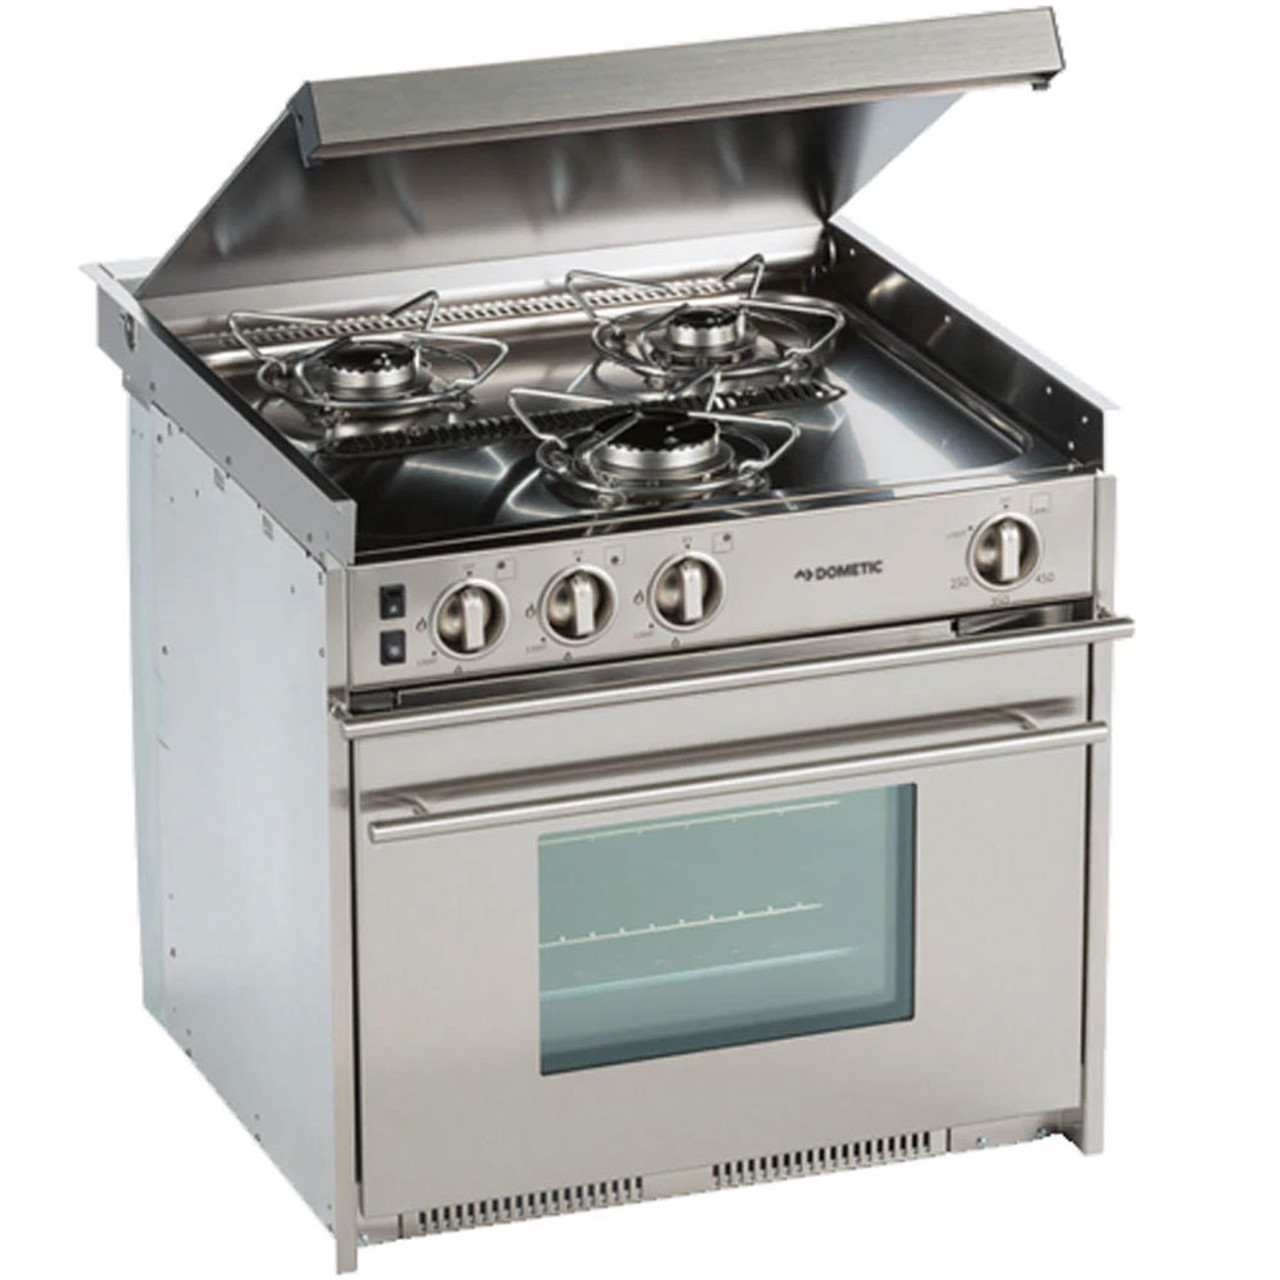 Rv Stove Oven >> Dometic Cu 434 Propane 3 Burner Stainless Steel Stove Oven